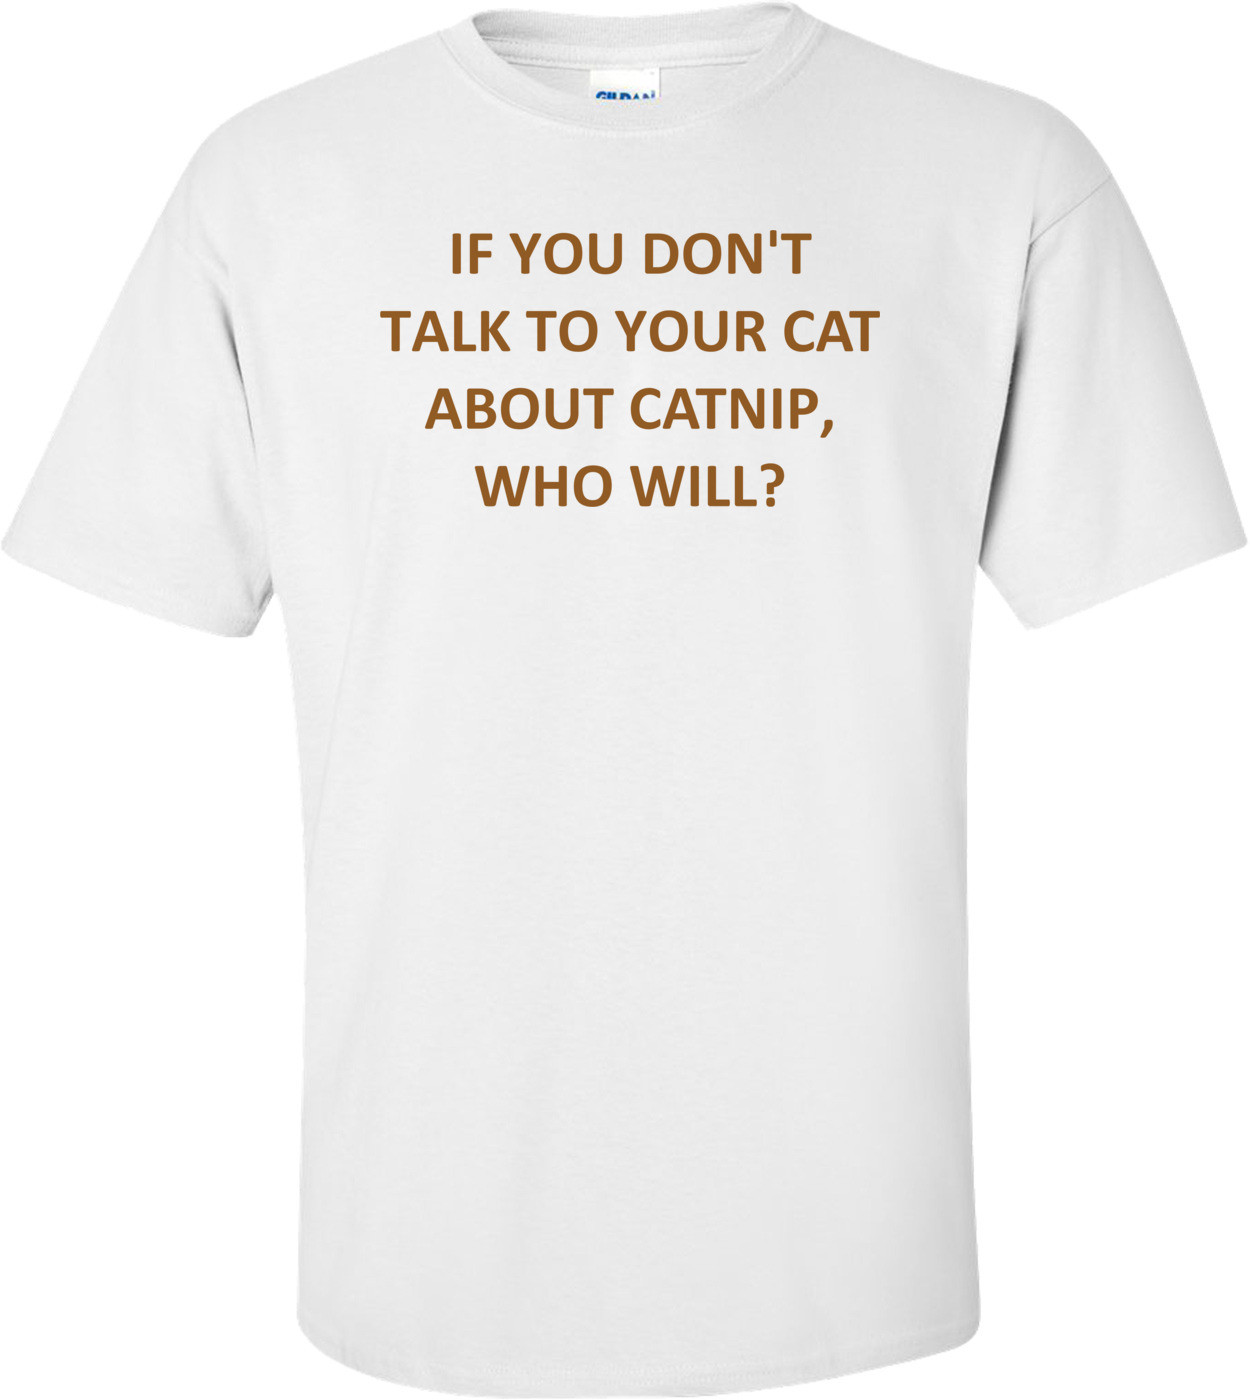 IF YOU DON'T TALK TO YOUR CAT ABOUT CATNIP, WHO WILL? Shirt